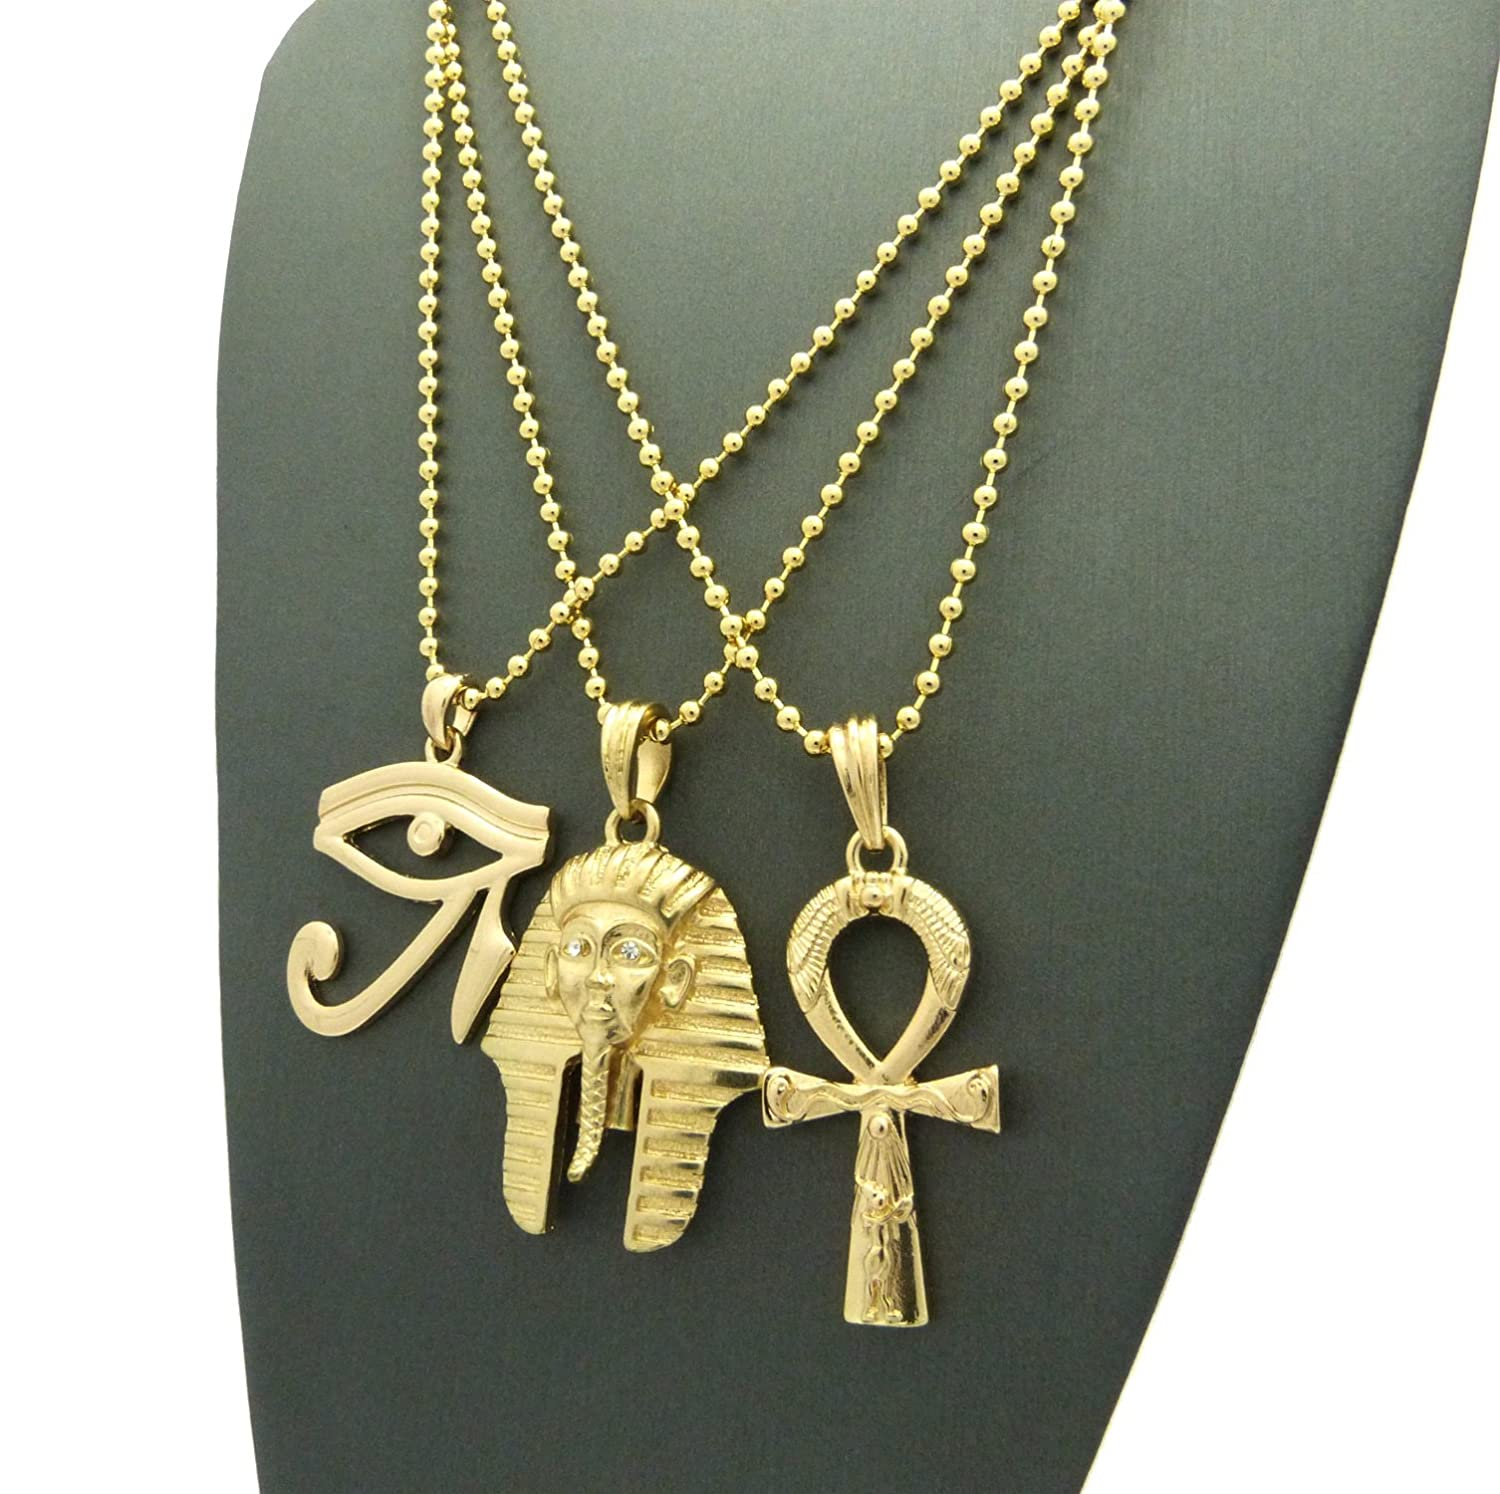 of page gold flying art pop copy box chains all angel wall necklace product new news pegasus over are charm mini with pendant stainless piece edition now culture limited micro steal streewear made chain set